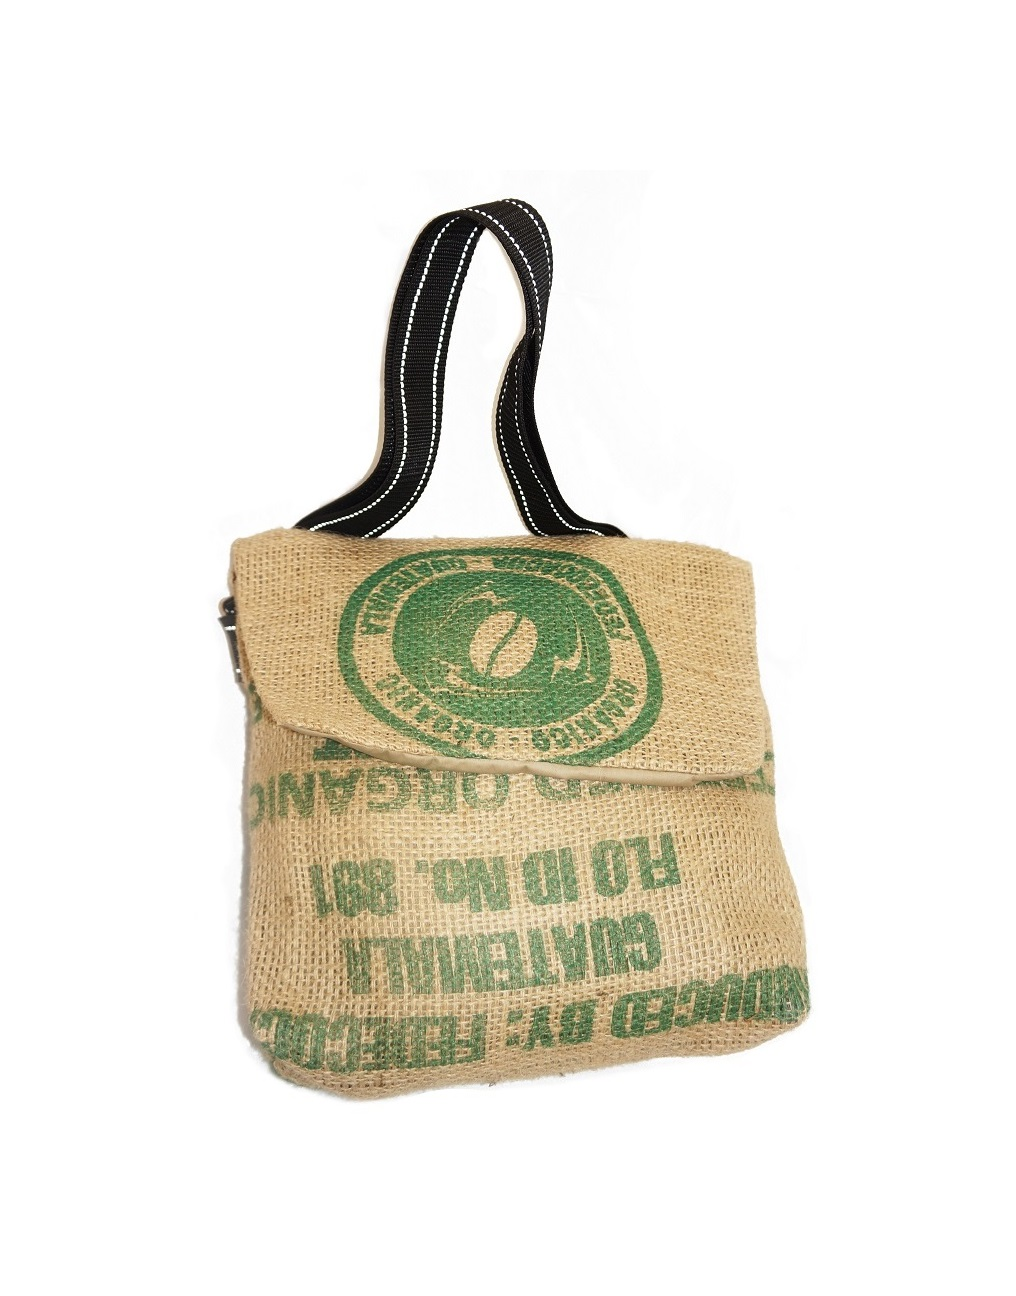 702b9d6584 Small recycled coffee sack bag. – Kafe 1788